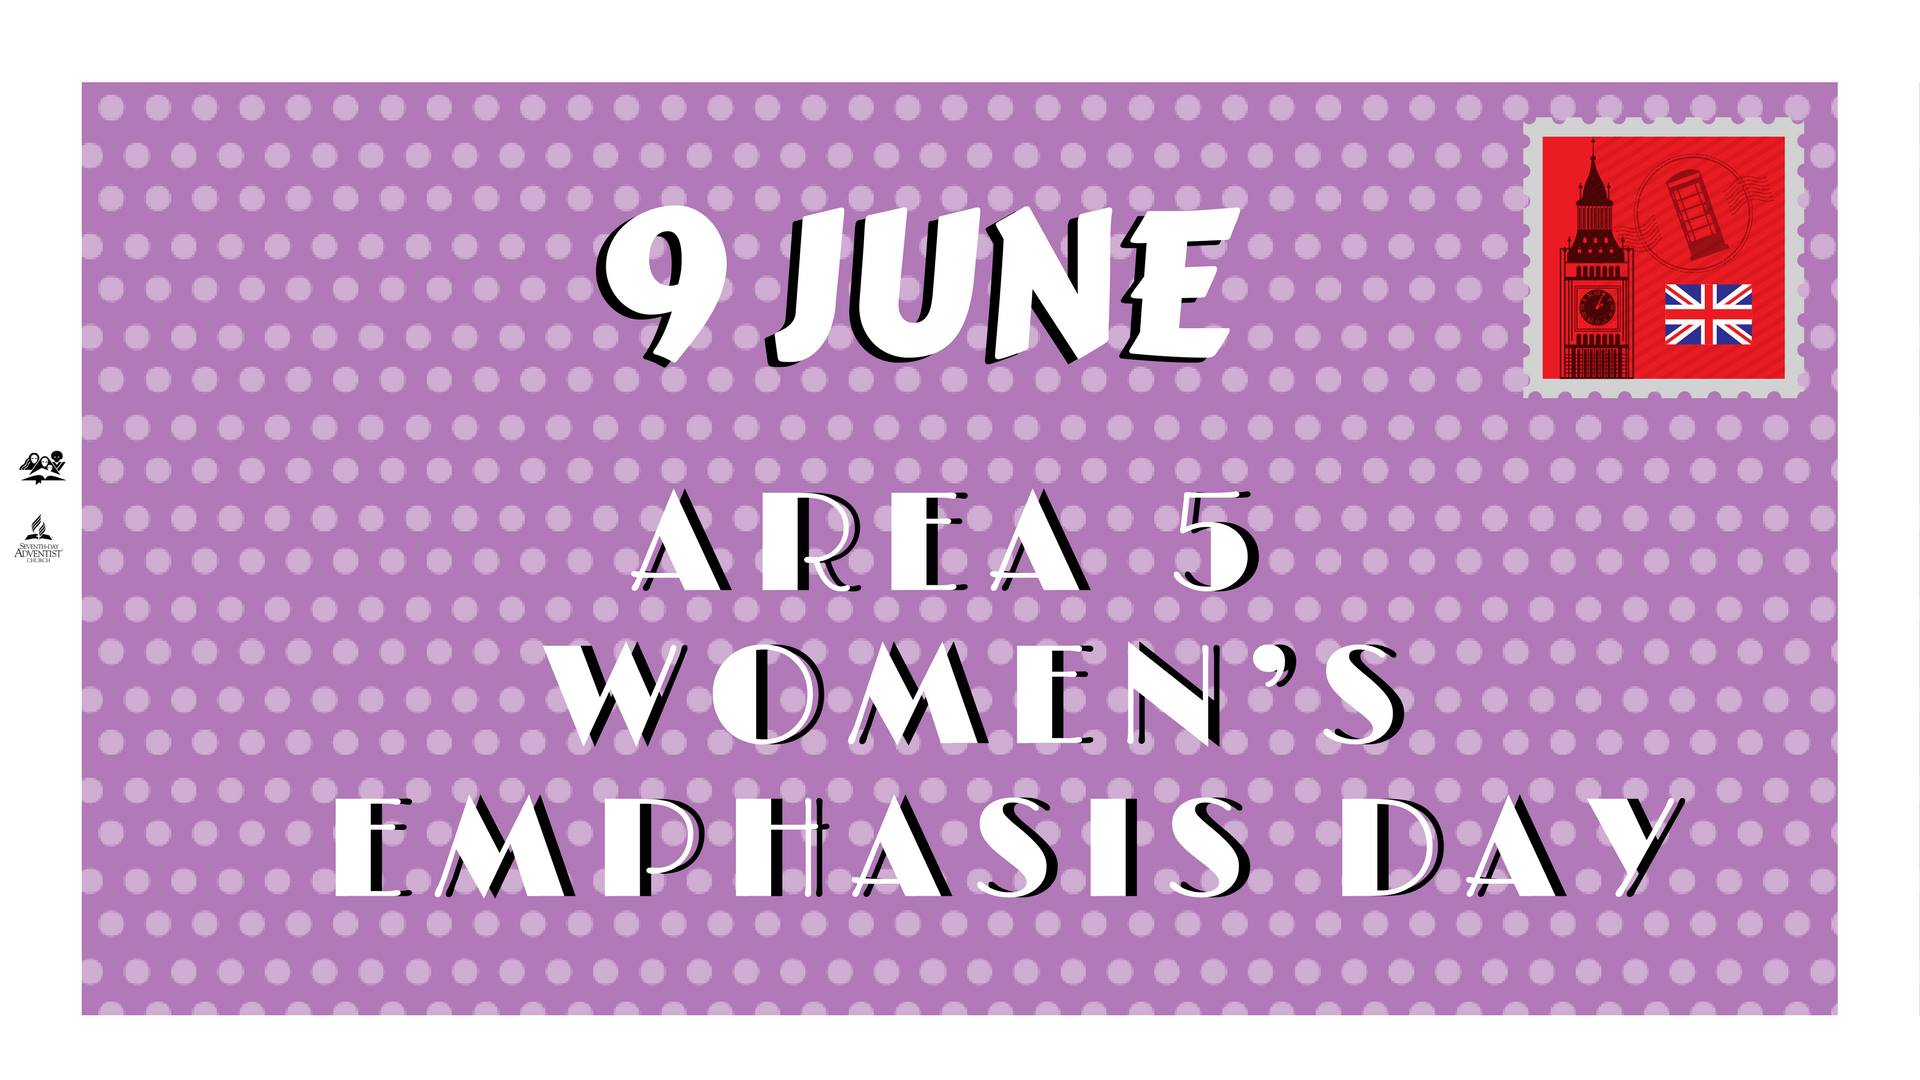 June 9 Area 5 Womens Emphasis Day.jpg